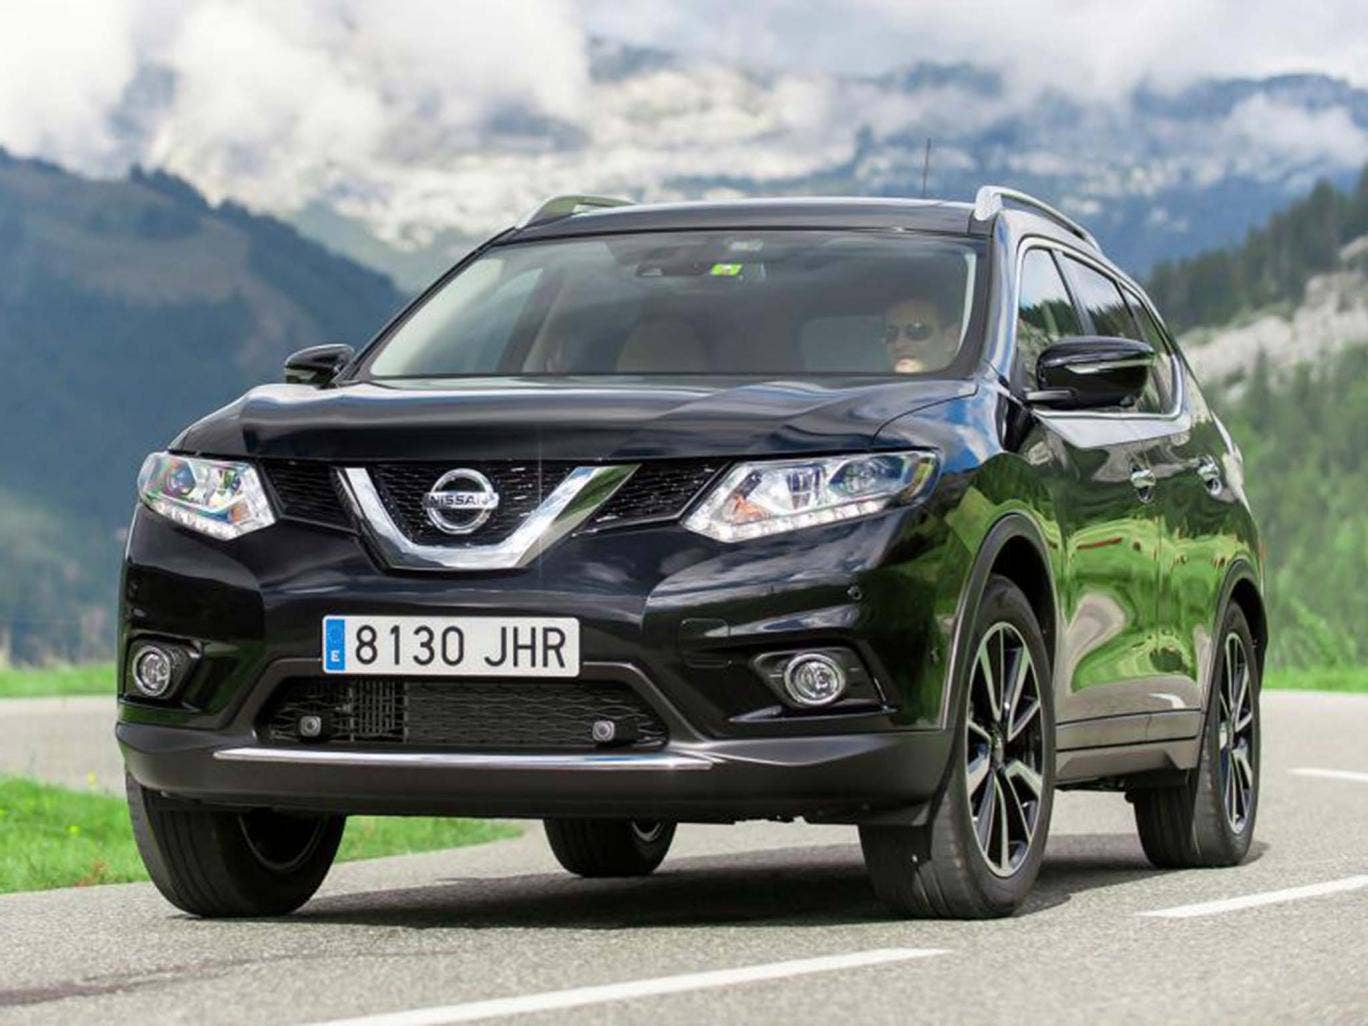 2015 nissan x trail 1 6 dig t 163 tekna motoring review nissan adds an entry level petrol. Black Bedroom Furniture Sets. Home Design Ideas